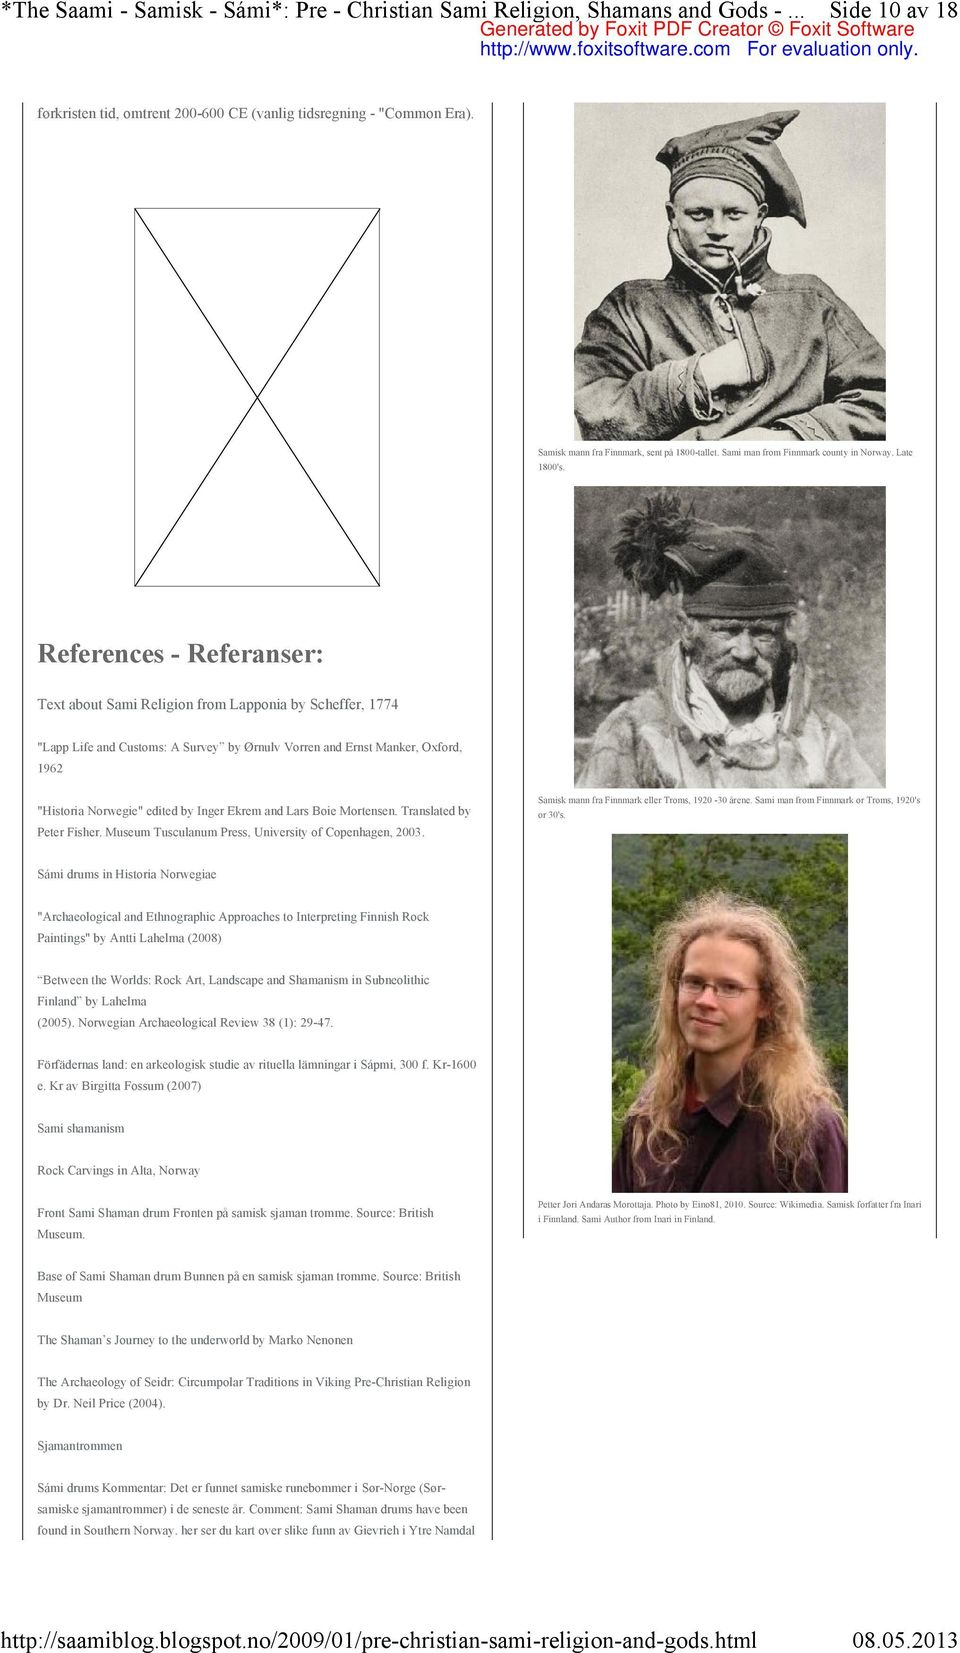 "References - Referanser: Text about Sami Religion from Lapponia by Scheffer, 1774 ""Lapp Life and Customs: A Survey by Ørnulv Vorren and Ernst Manker, Oxford, 1962 ""Historia Norwegie"" edited by Inger"